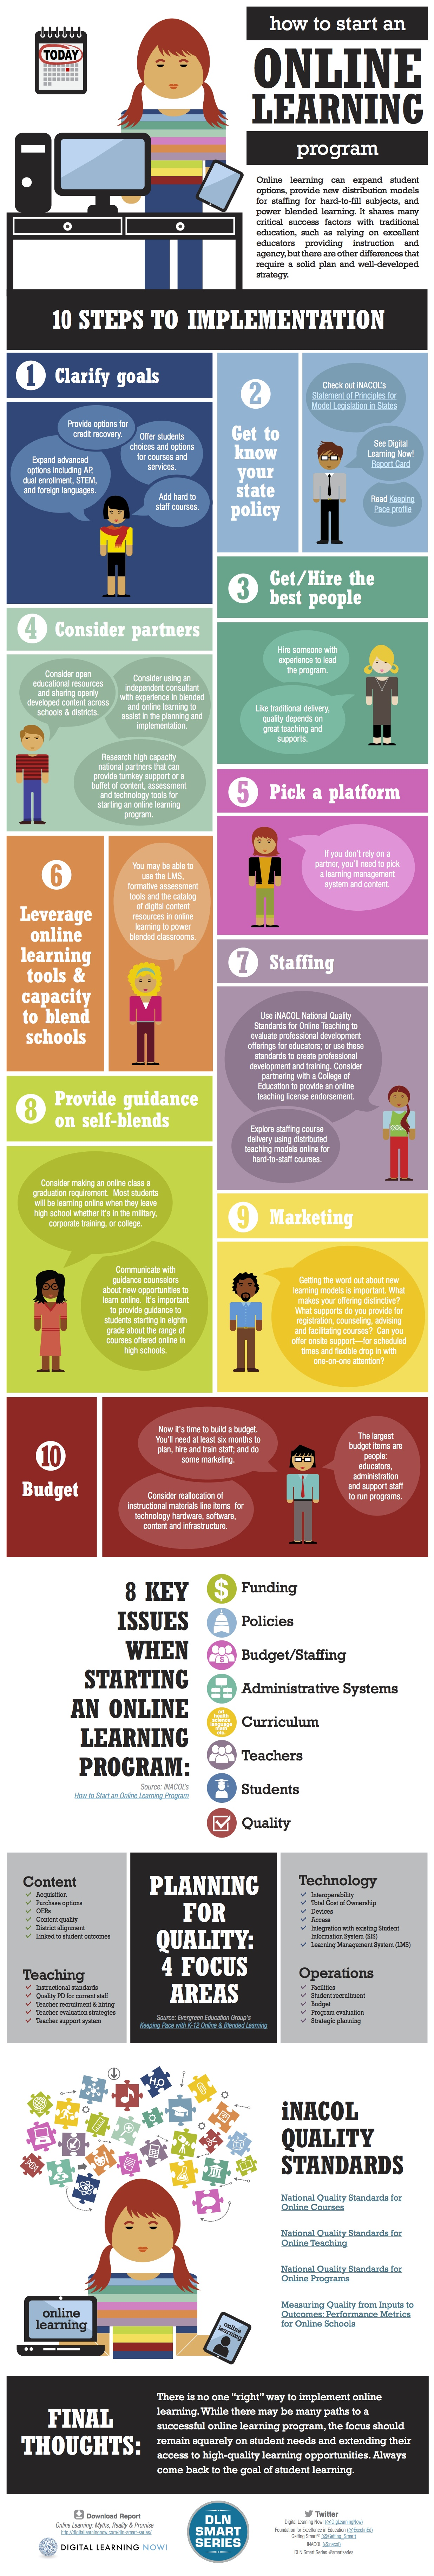 How To Start An Online Program Infographic